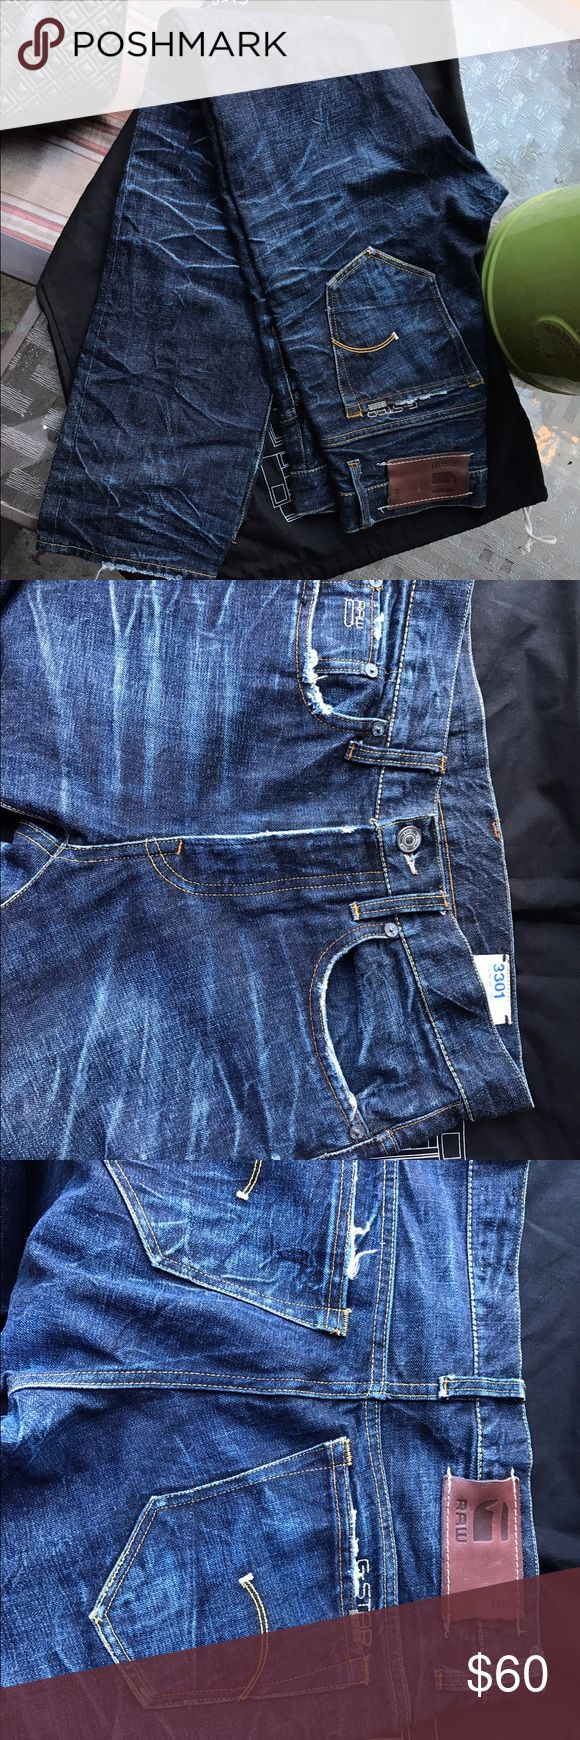 G Star raw size 31 Used once but my husband prefers regular fit than skinny, retail Price $189 G Star Raw Jeans Skinny